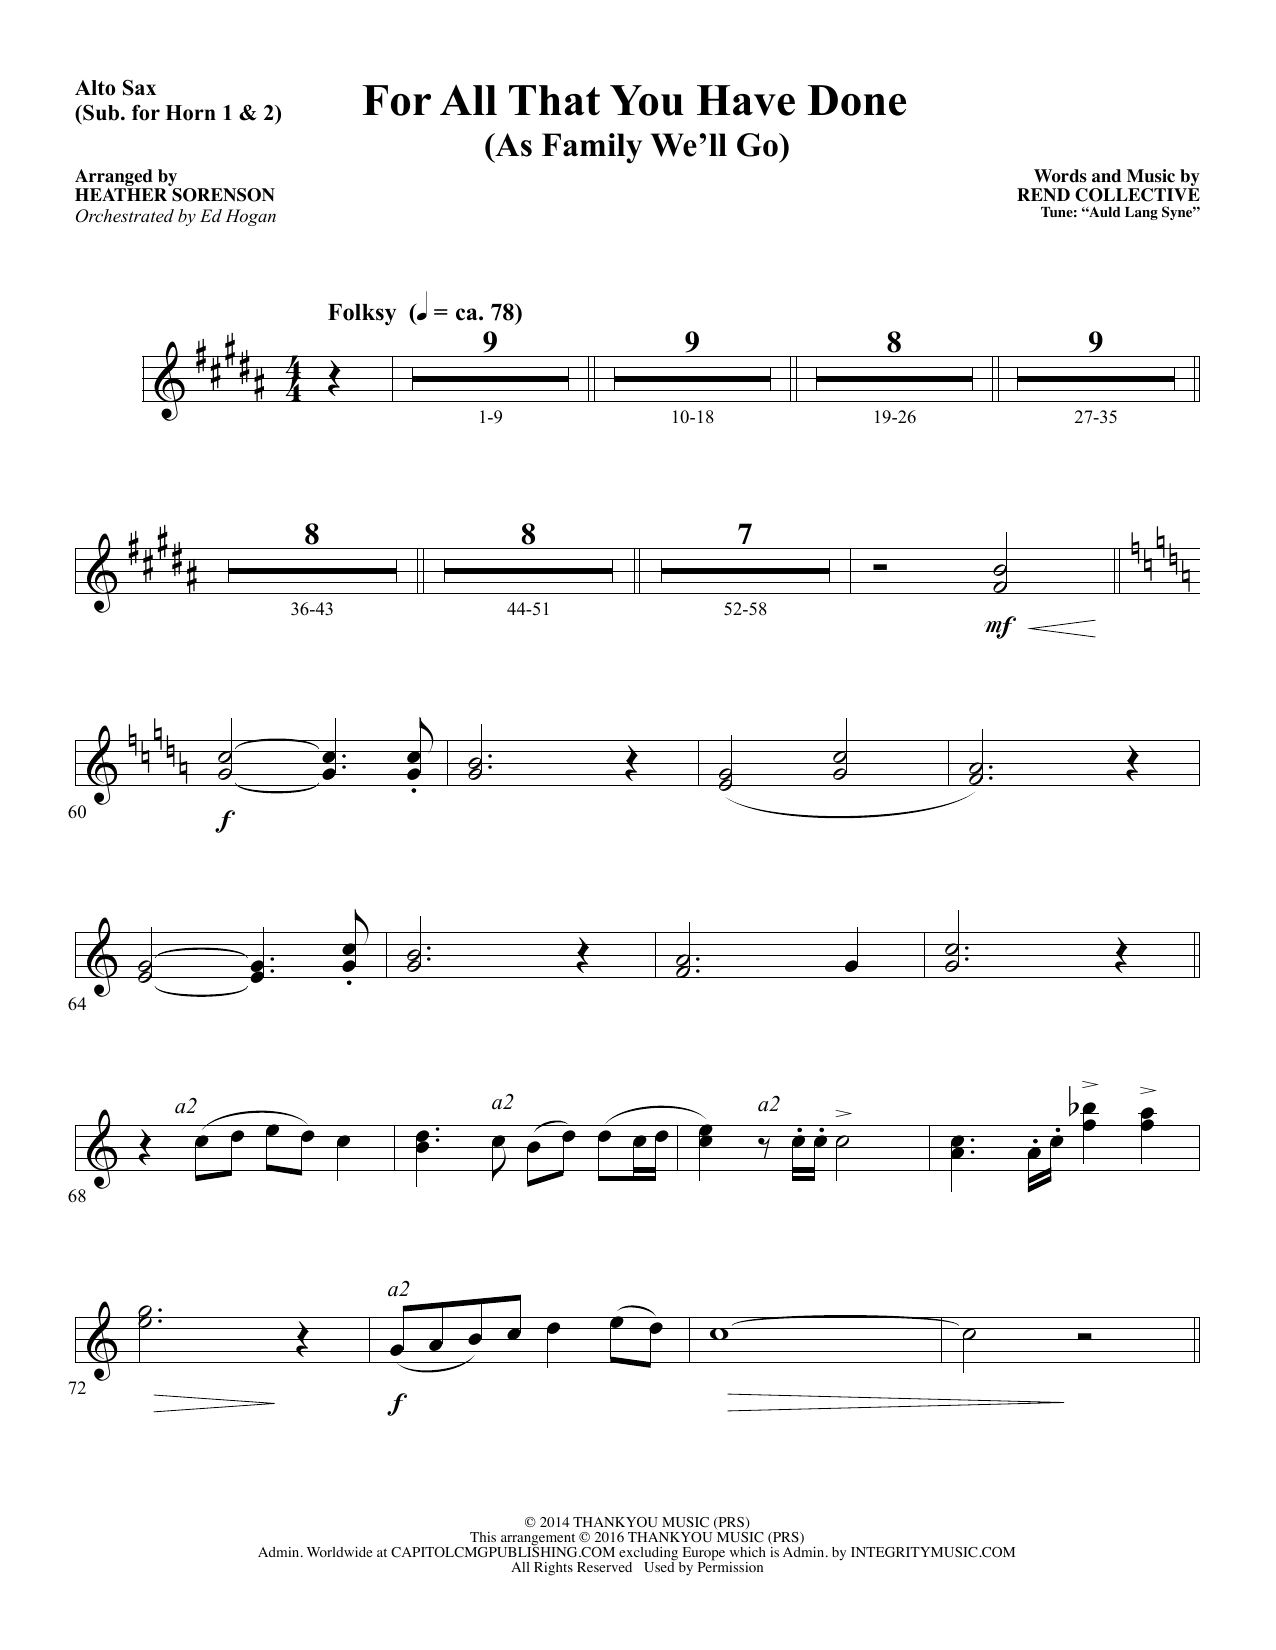 For All That You Have Done - Alto Sax 1-2 (sub. Horn 1-2) (Choir Instrumental Pak)